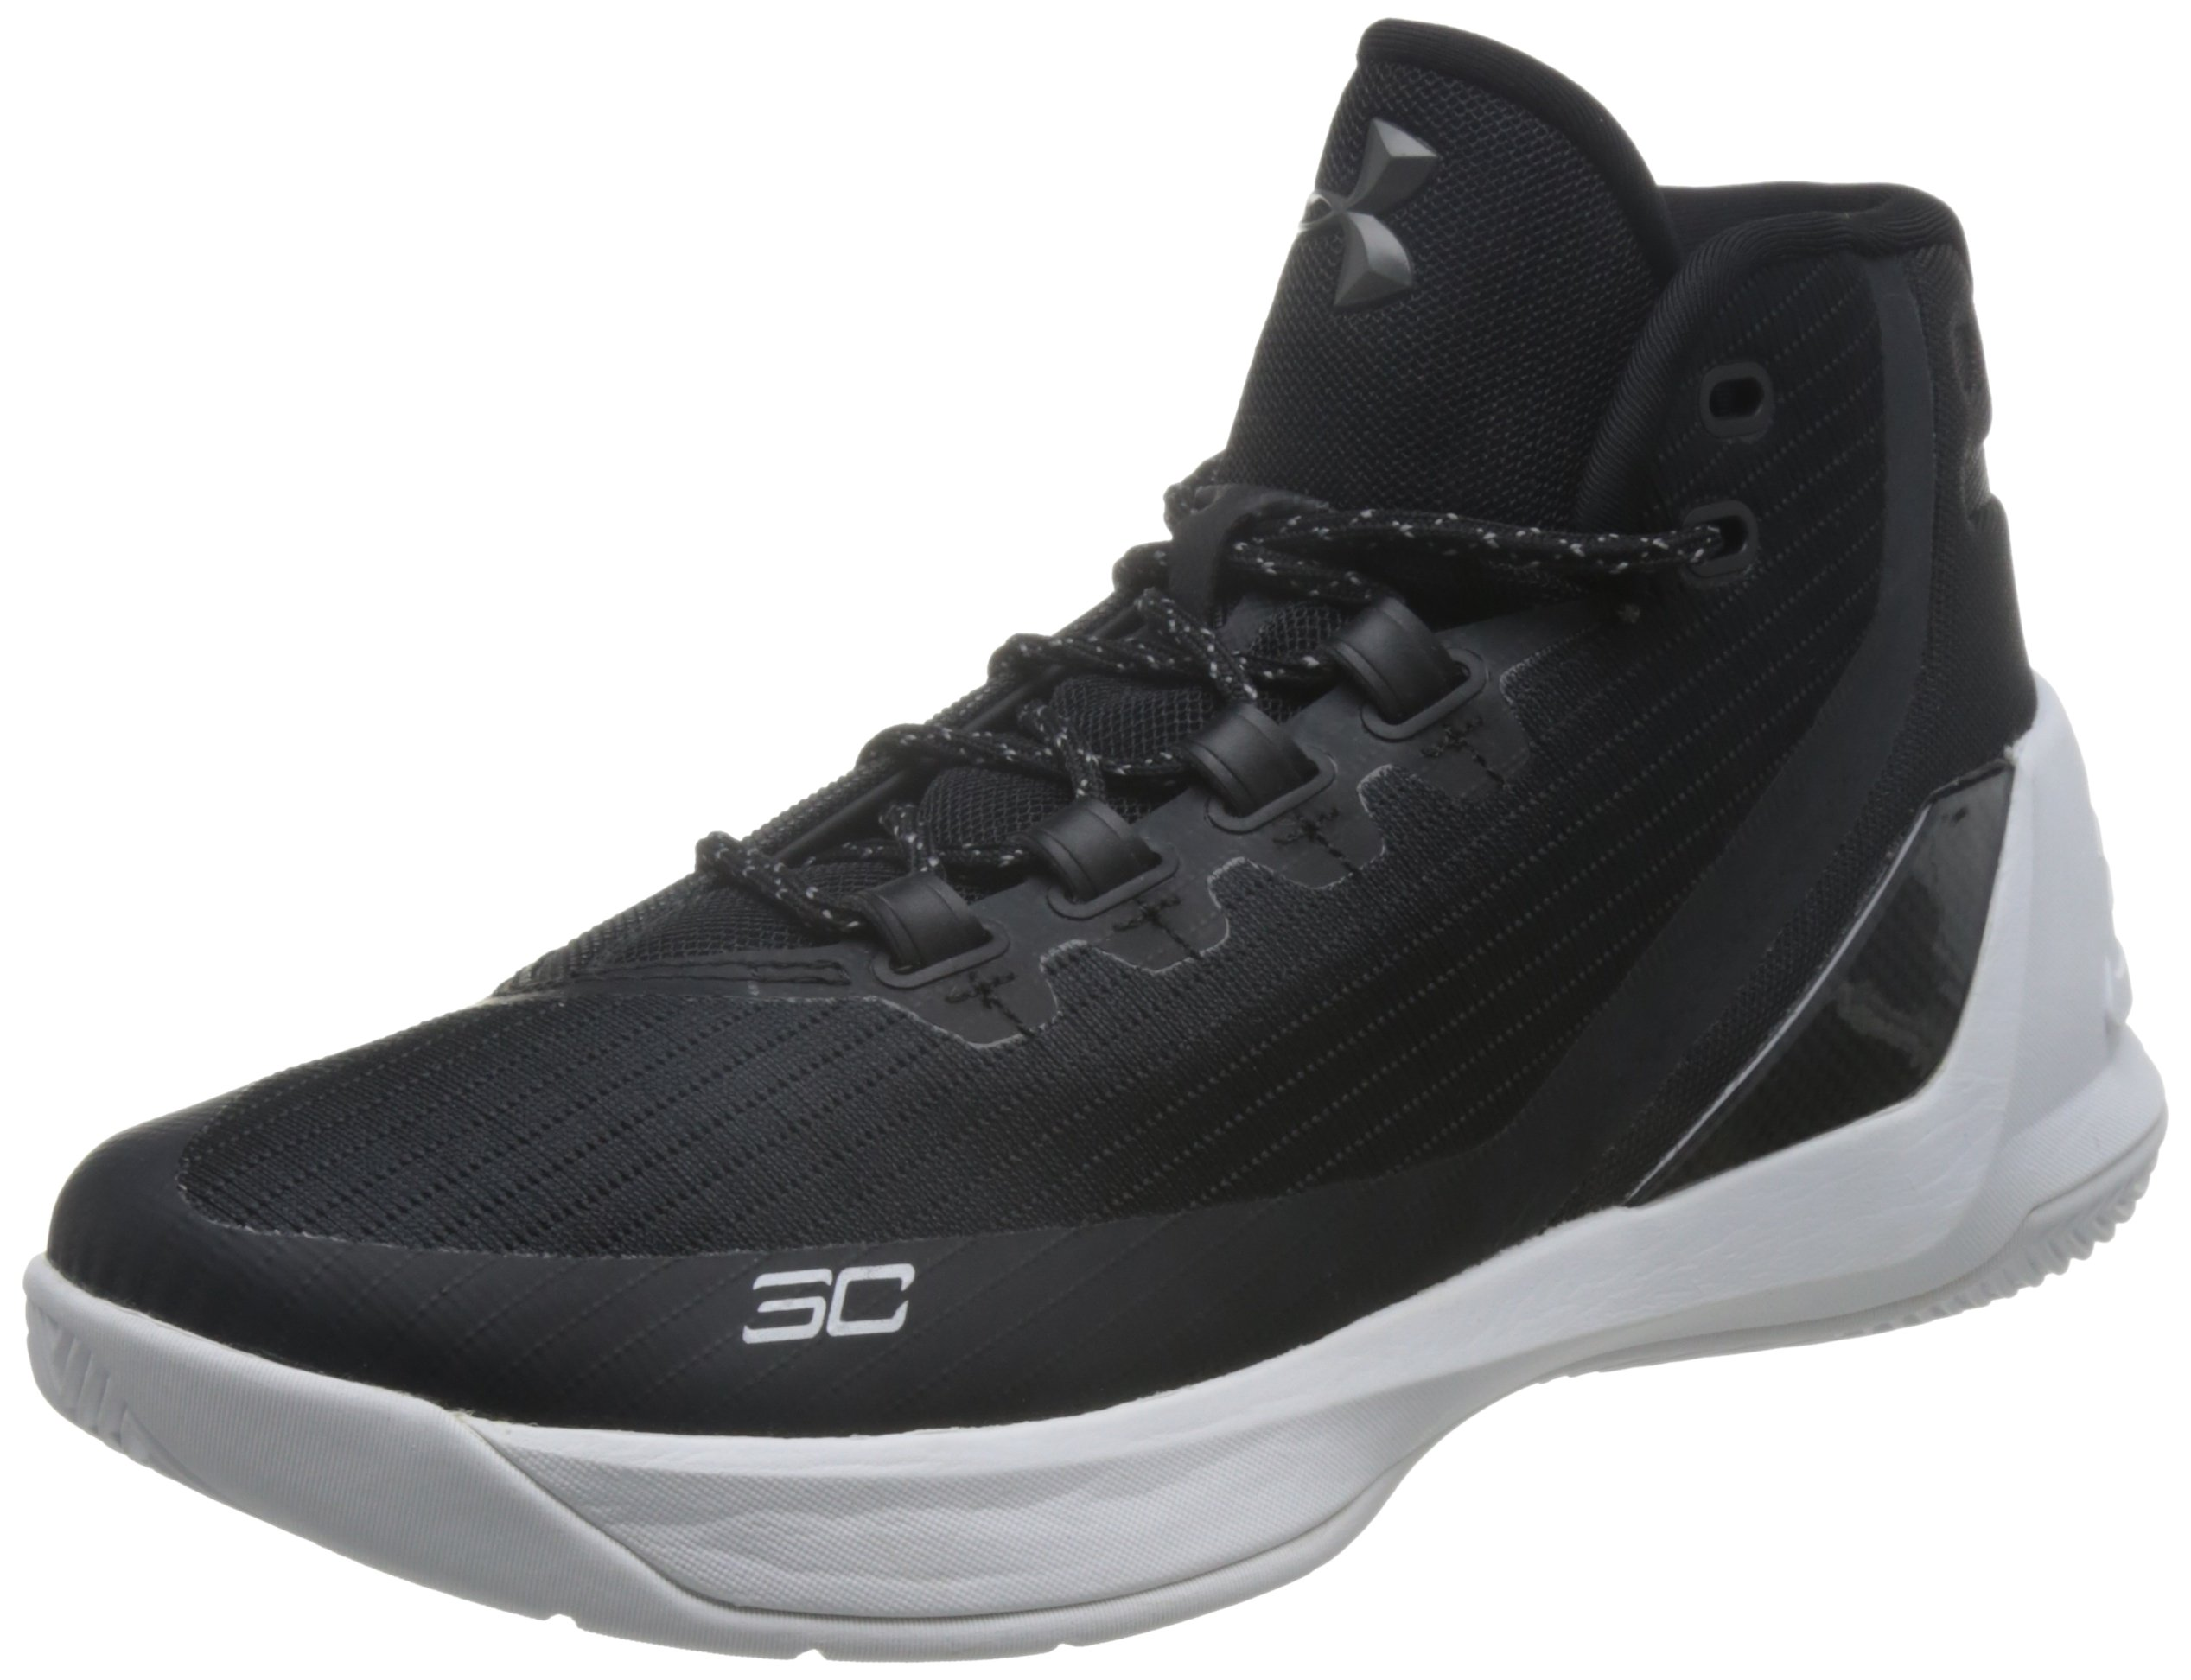 73e02fd073f5 Galleon - Under Armour Mens Curry 3 Basketball Shoe (11